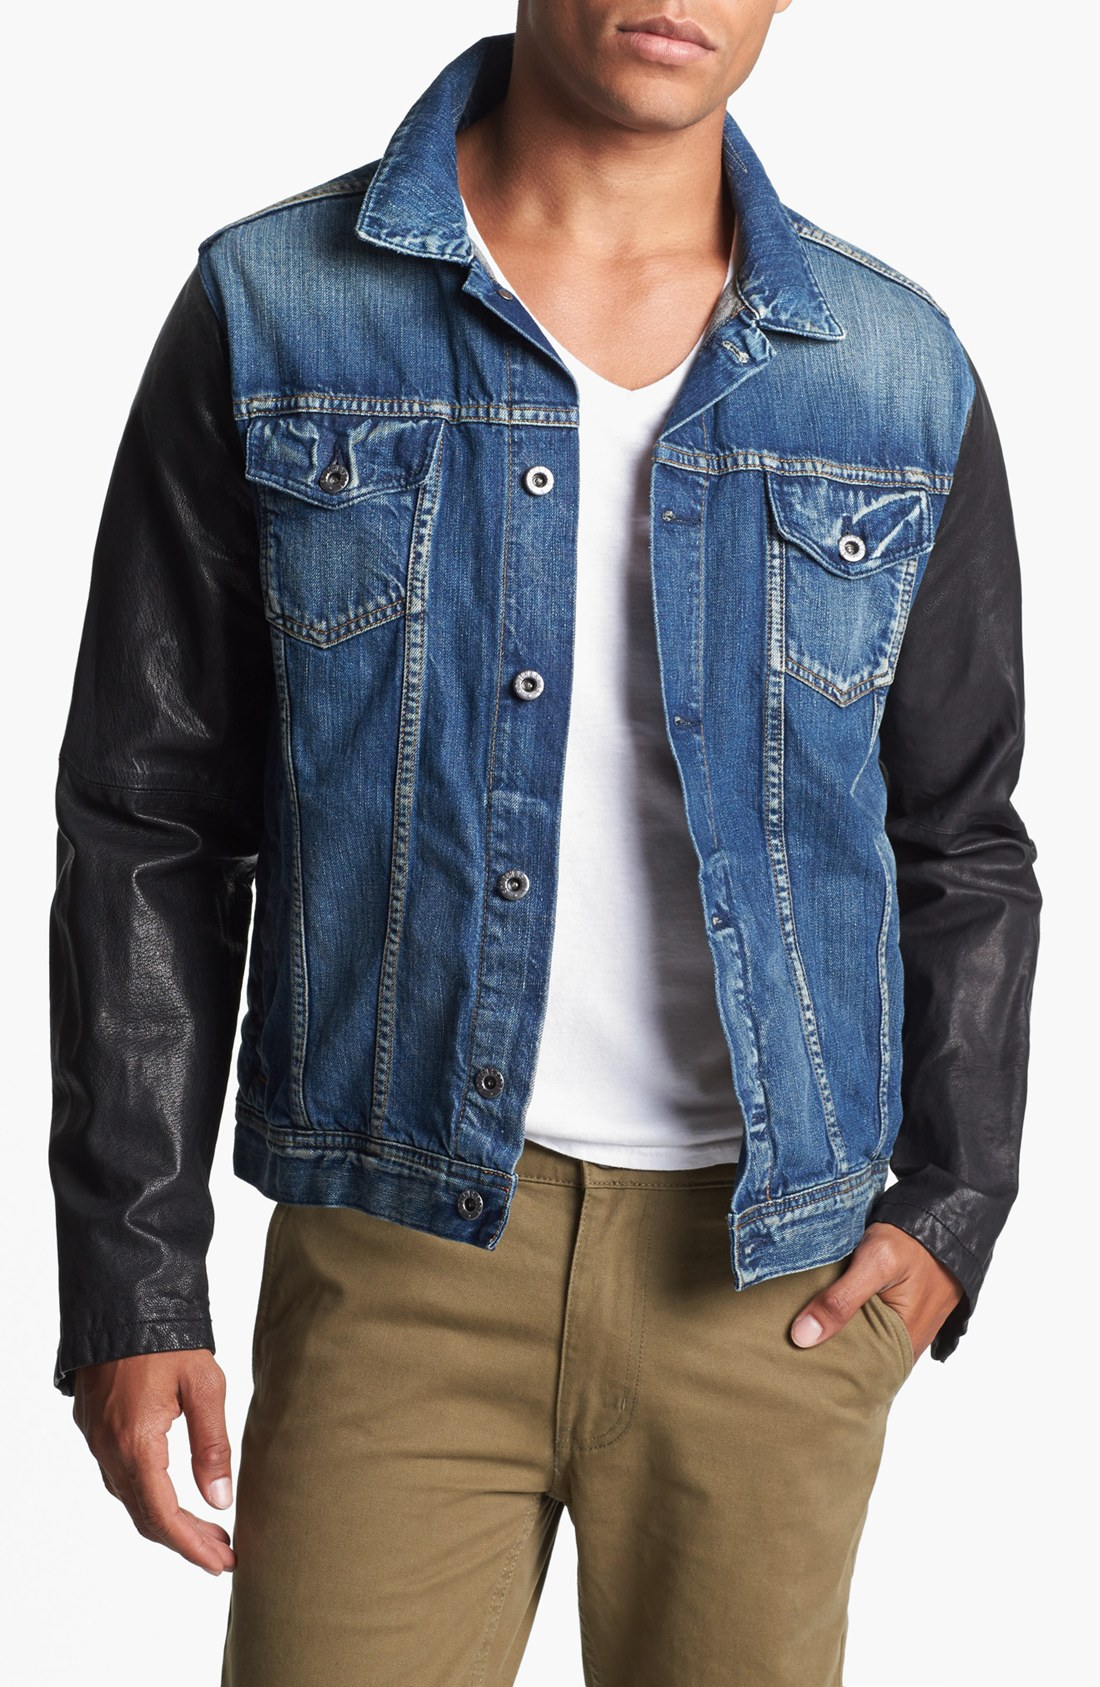 Denim Jacket Leather Sleeves Men 5 Reviews. there are even women that are engaged in collectingDenim jacket leather sleeves menand have a collection of the dresses in different designs, color and styles and so fabulousdown4allb7.cf are made from refined cotton which will give them a contented feel. purchase many fashionableDenim jacket leather sleeves menin this article with your own .